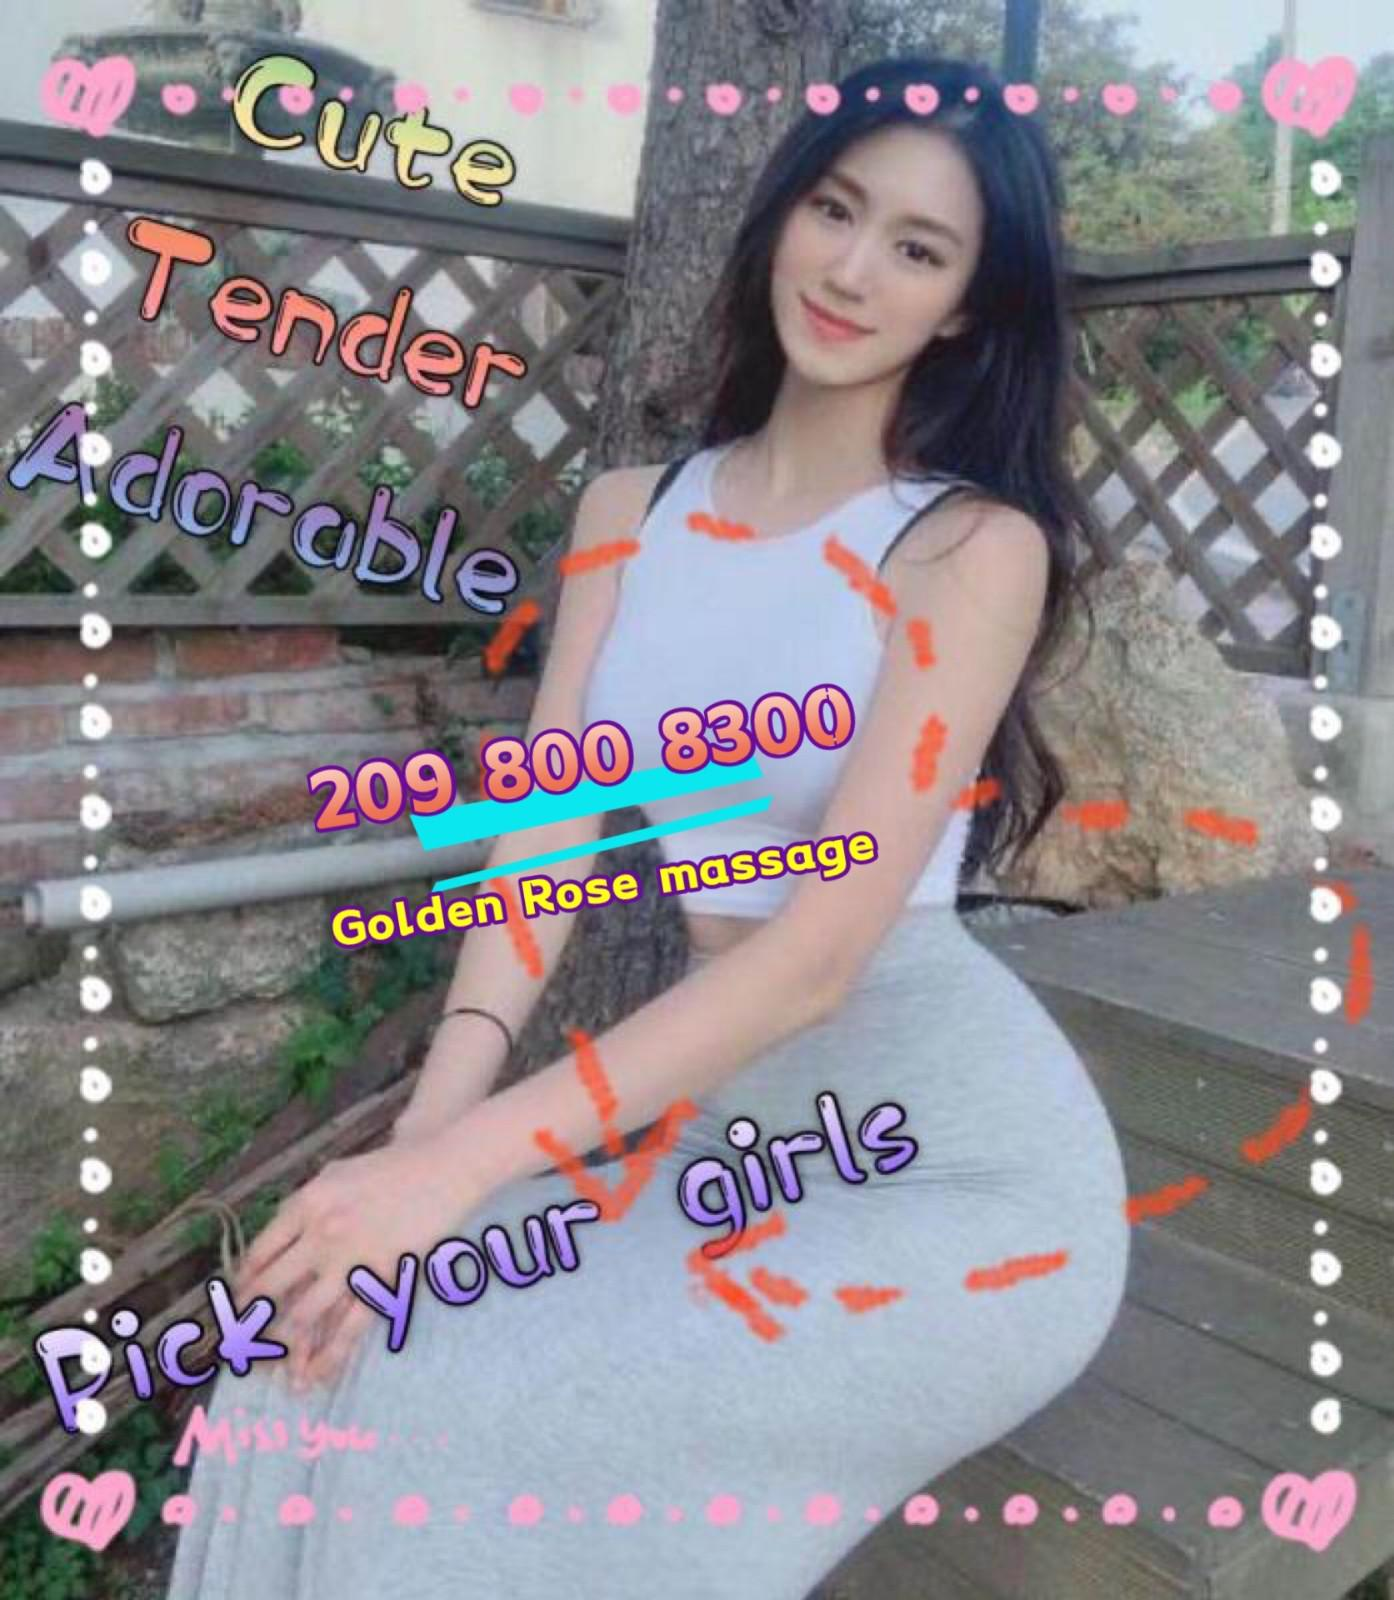 ⭐Grand open✅⭐209-800-8300⭐ASIAN BODY MASSAGE ✅⭐✅💖✅⭐✅ 3 Asian Young ✅⭐✅💖✅⭐✅⭐